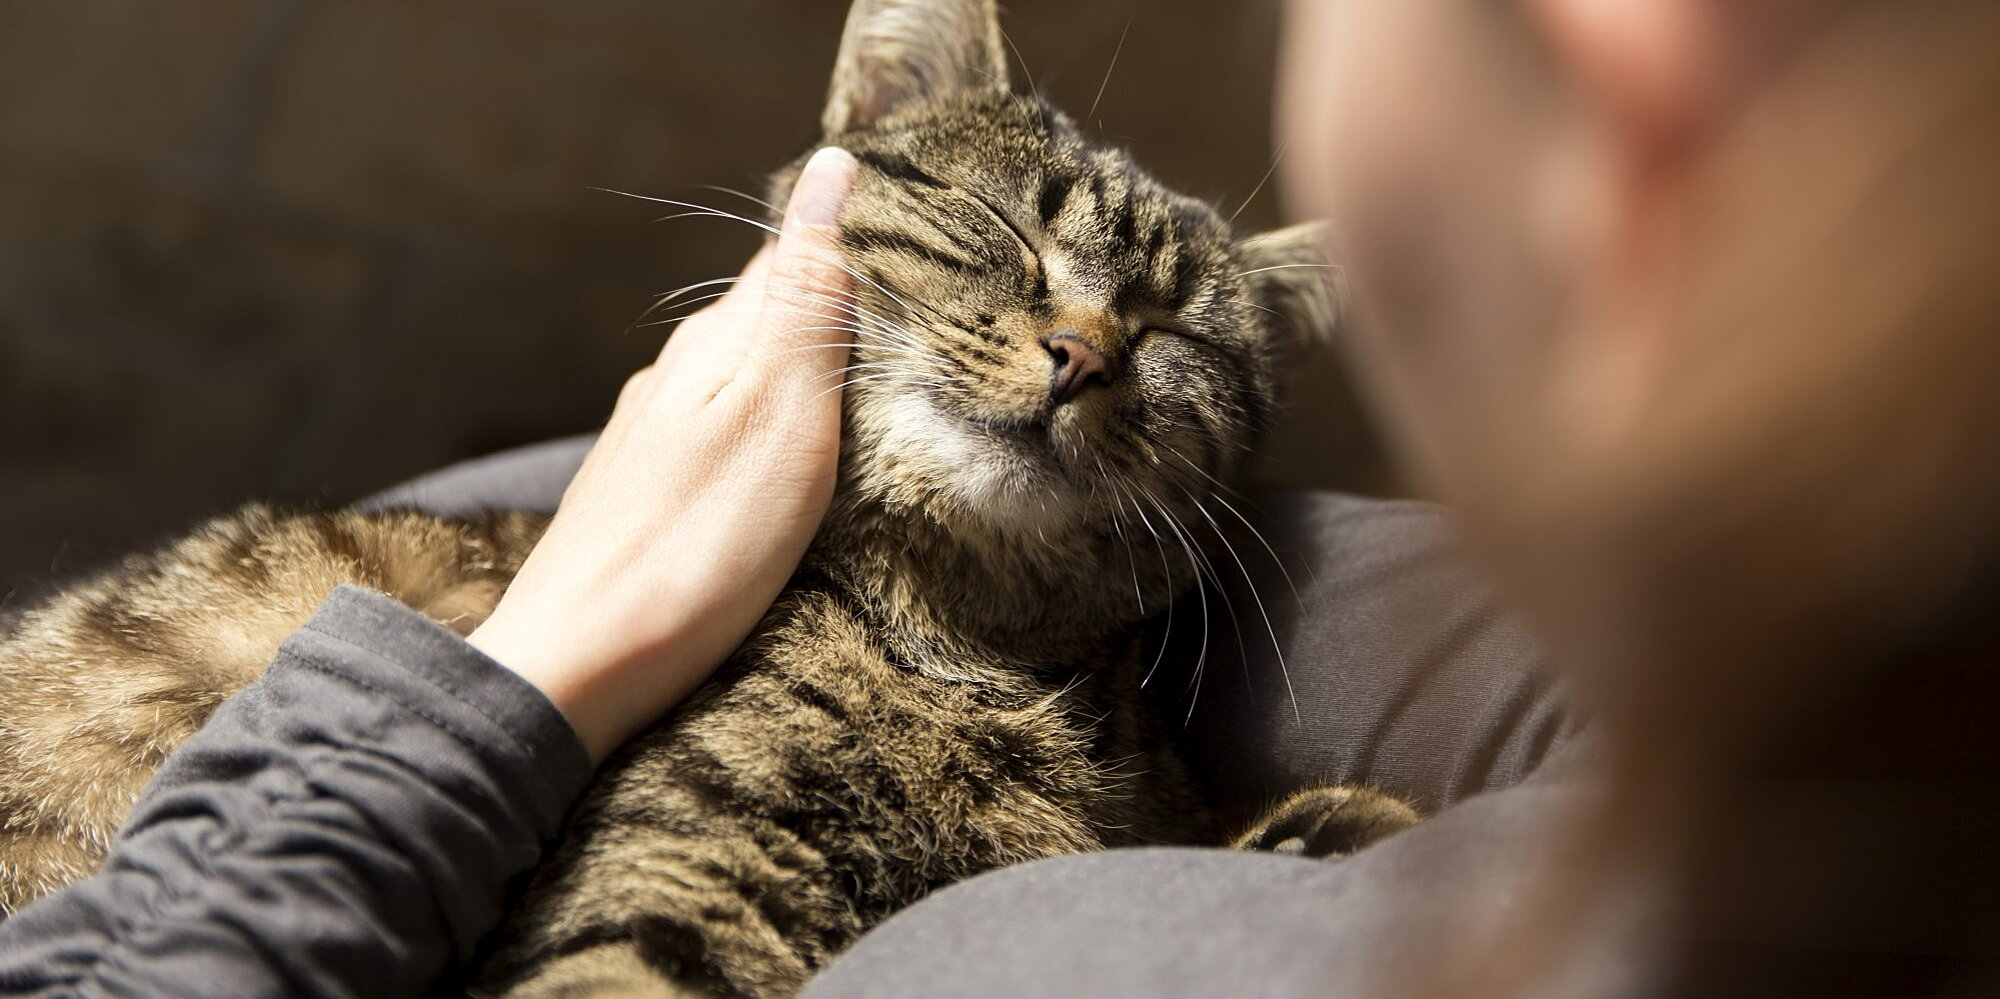 Does Your Cat Love You? Here's How You Can Tell, According to Experts